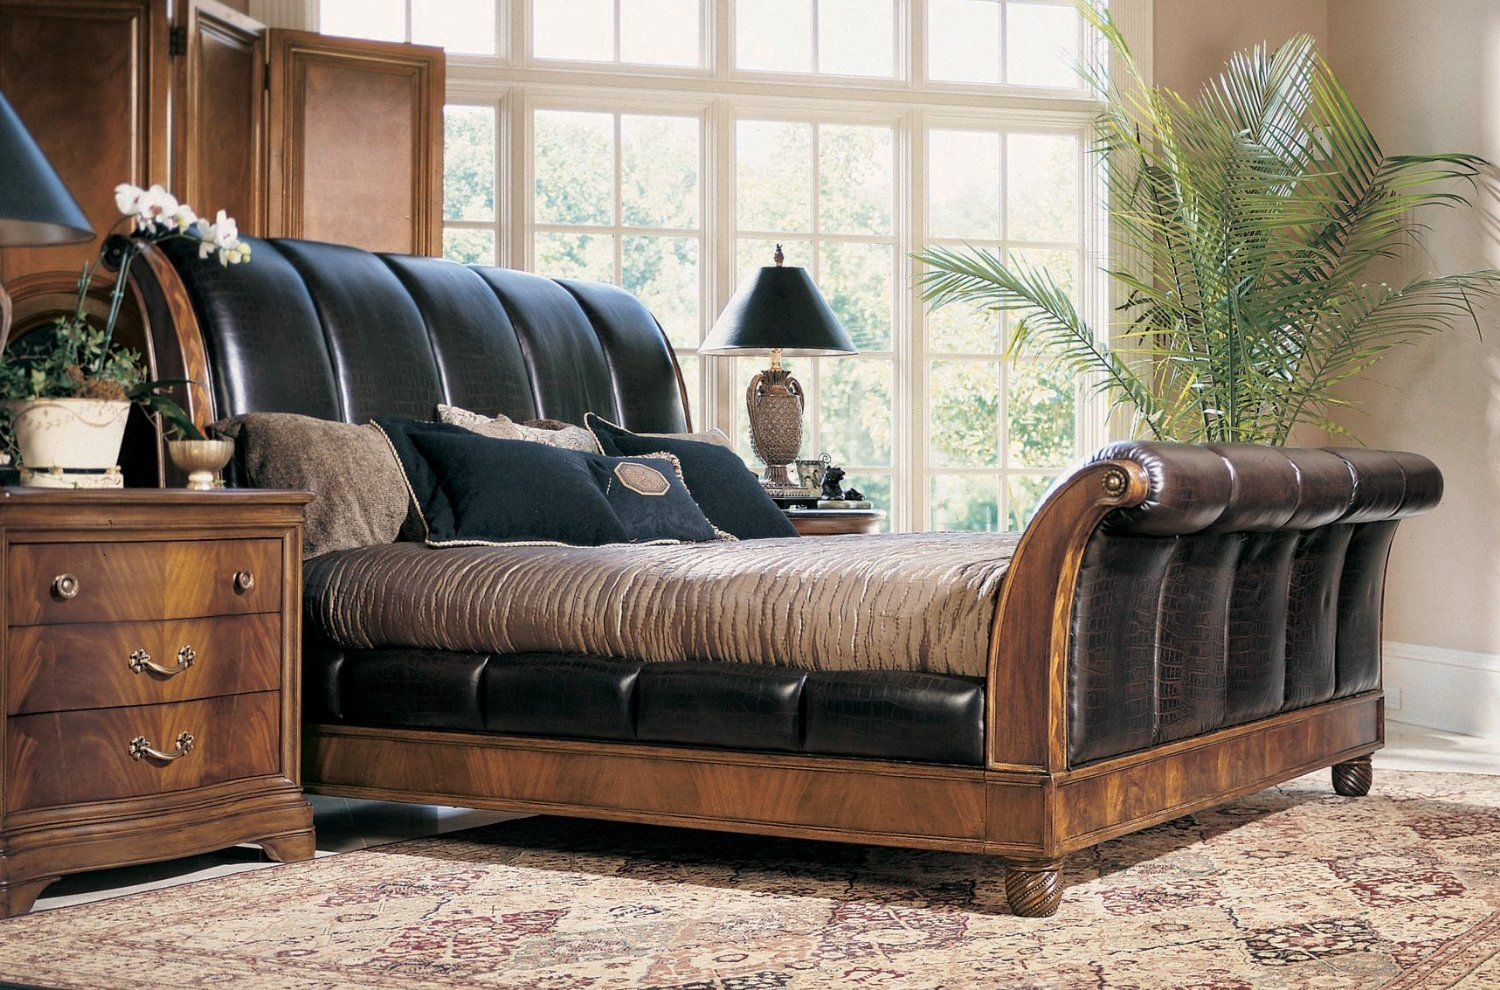 Best Leather Sleigh Bed In 2020 Furniture Luxurious Bedrooms 400 x 300